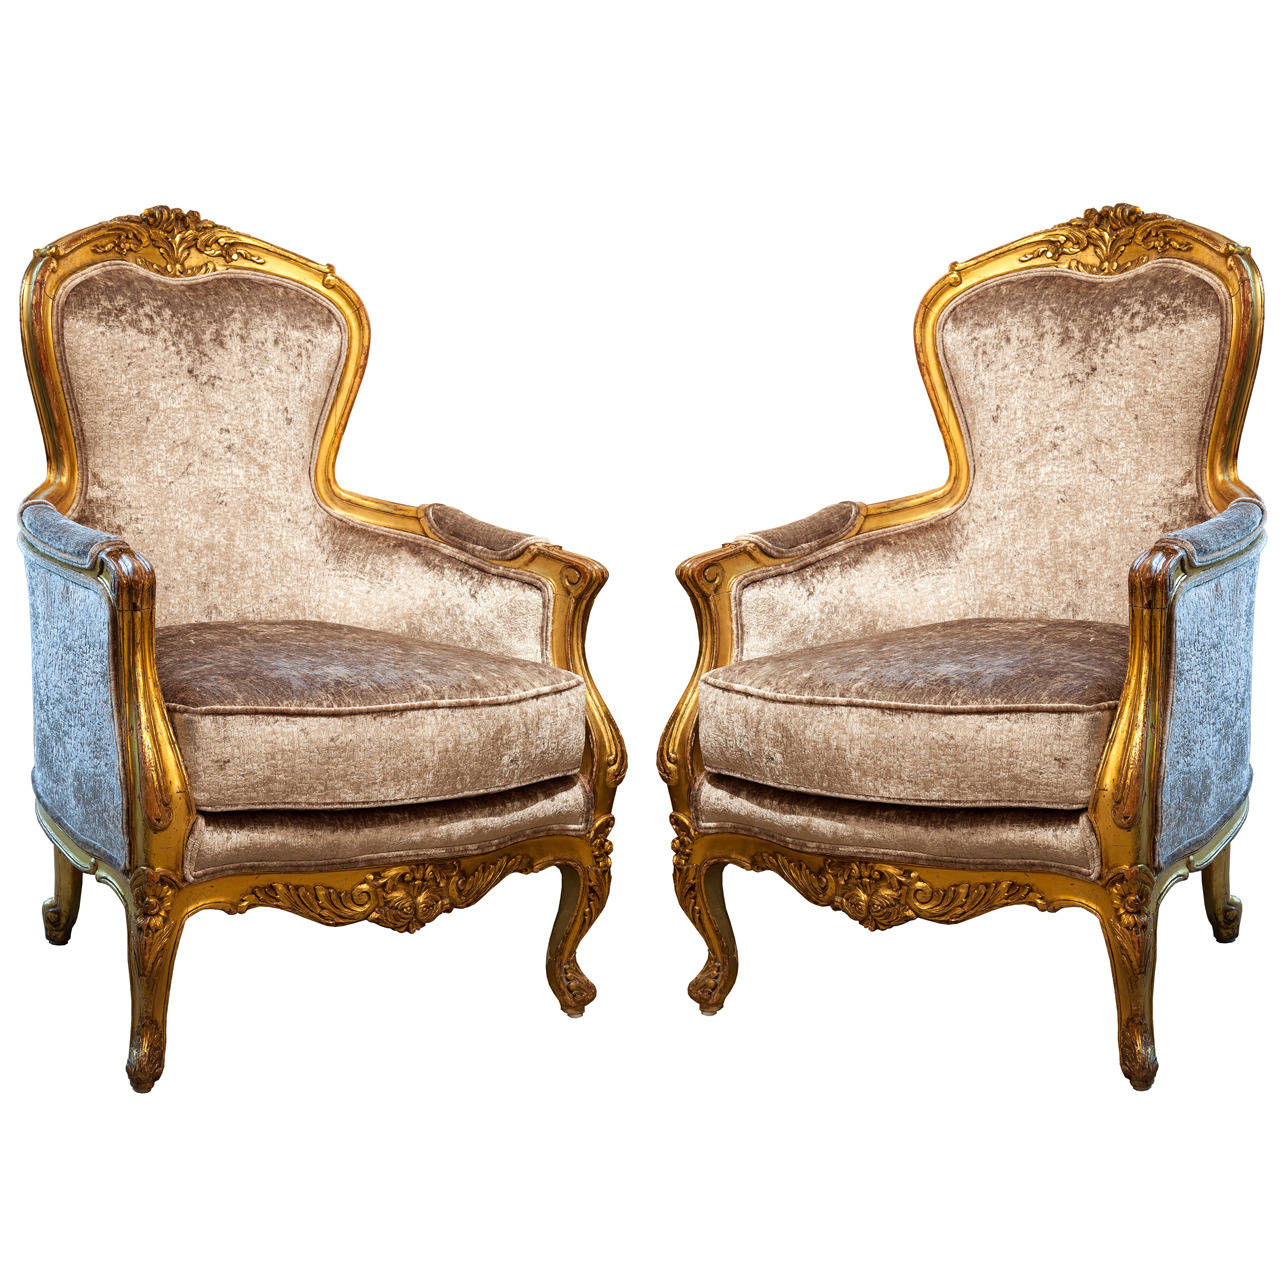 bergere chairs for sale used portable massage antique french 19th c gilt wood at